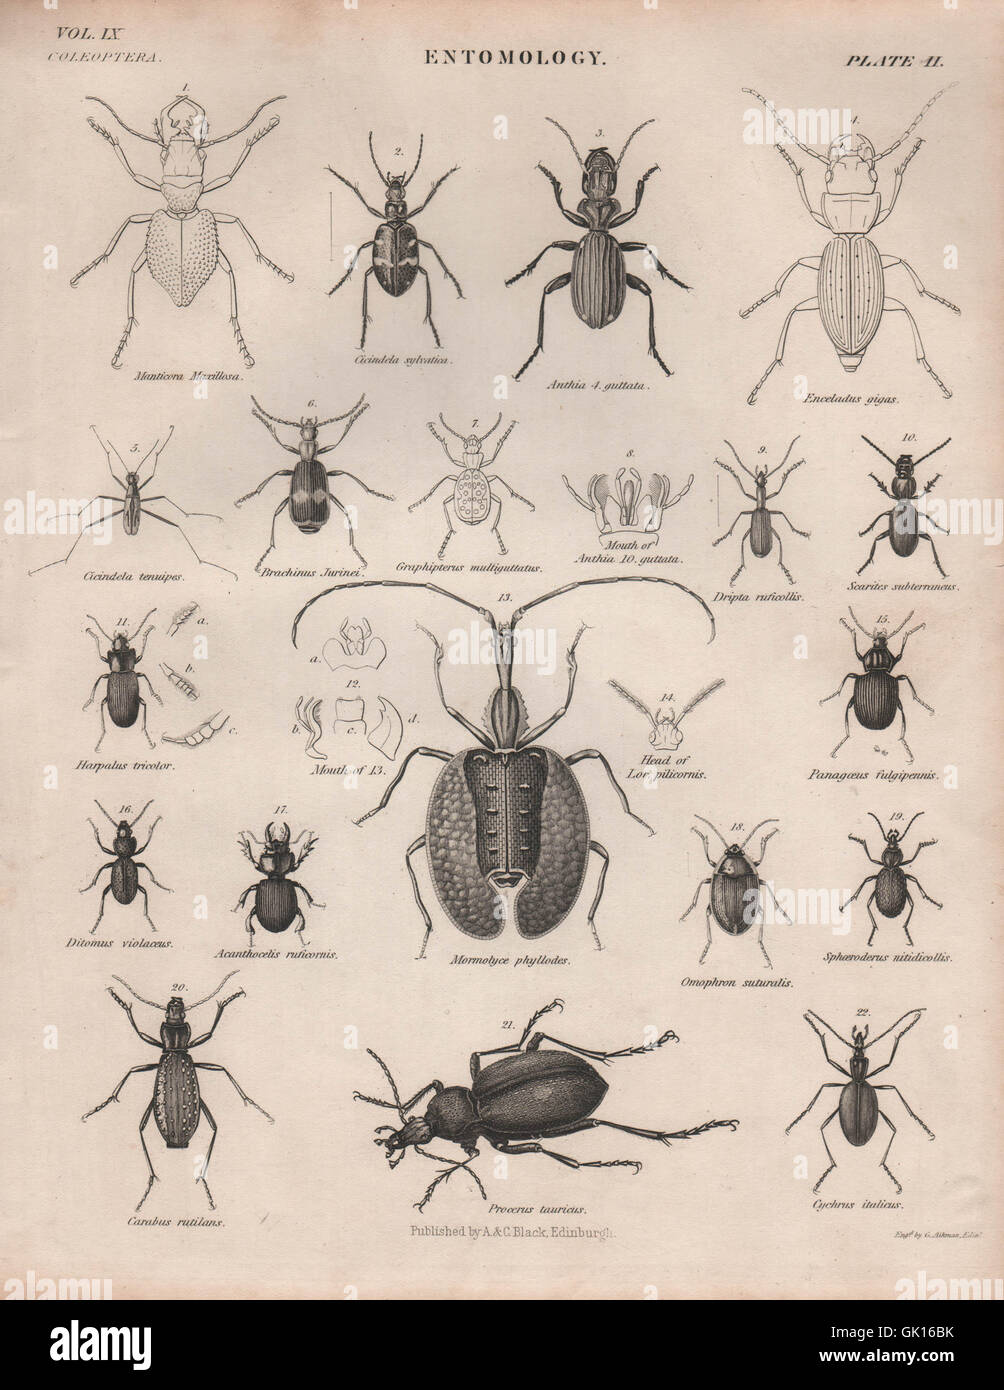 ENTOMOLOGY 2. Insects beetles. BRITANNICA, antique print 1860 Stock Photo